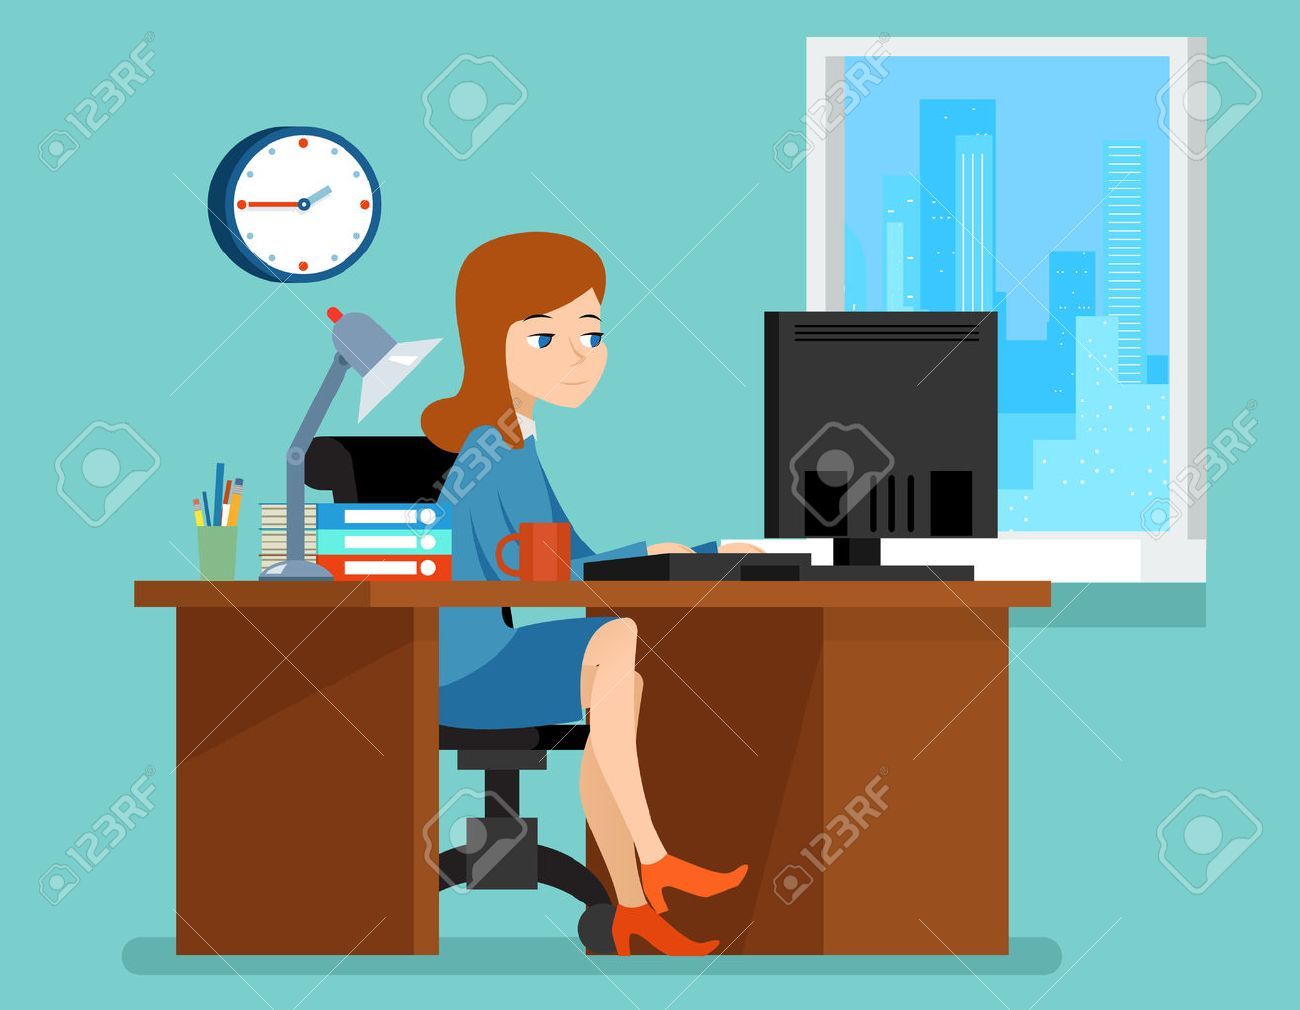 Woman working in office at the desk with computer. Professional workplace. Business woman on workplace vector illustration in flat style - 51088612